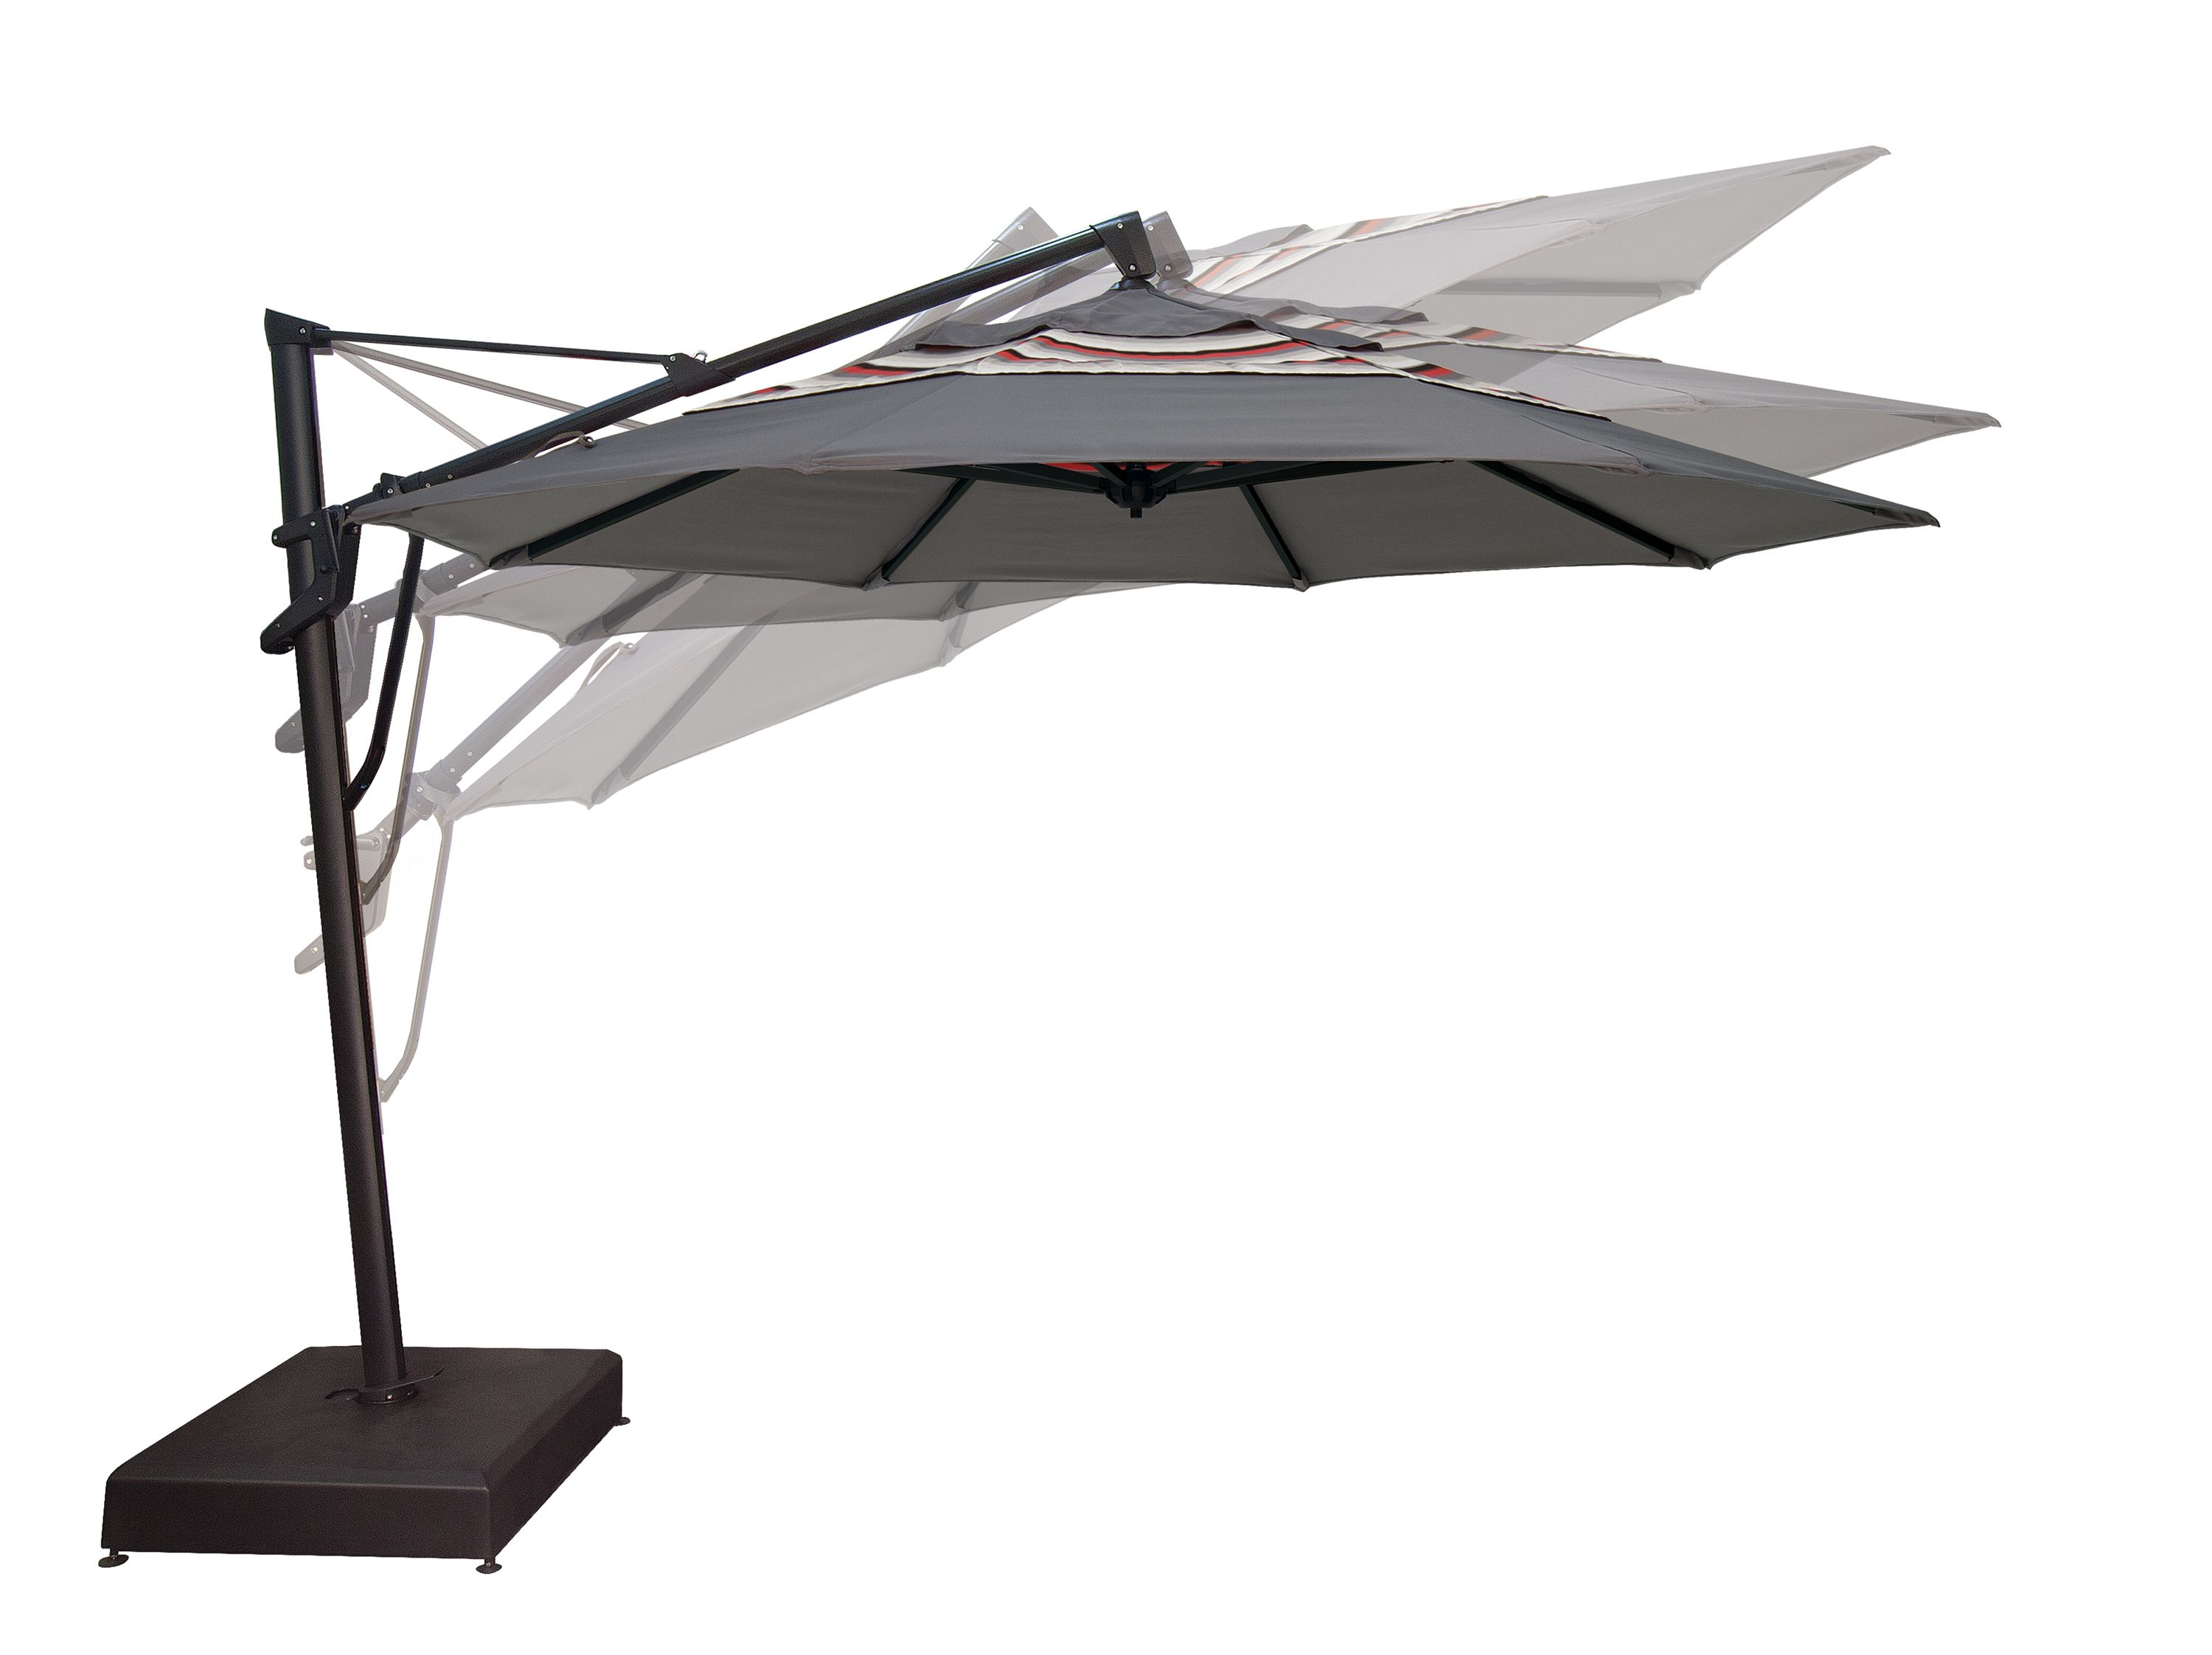 The Akz Plus Cantilever By Treasure Garden Has Been Designed To Provide Infinite Vertical Tilt As Well As Cantilever Umbrella Umbrella Patio Umbrella